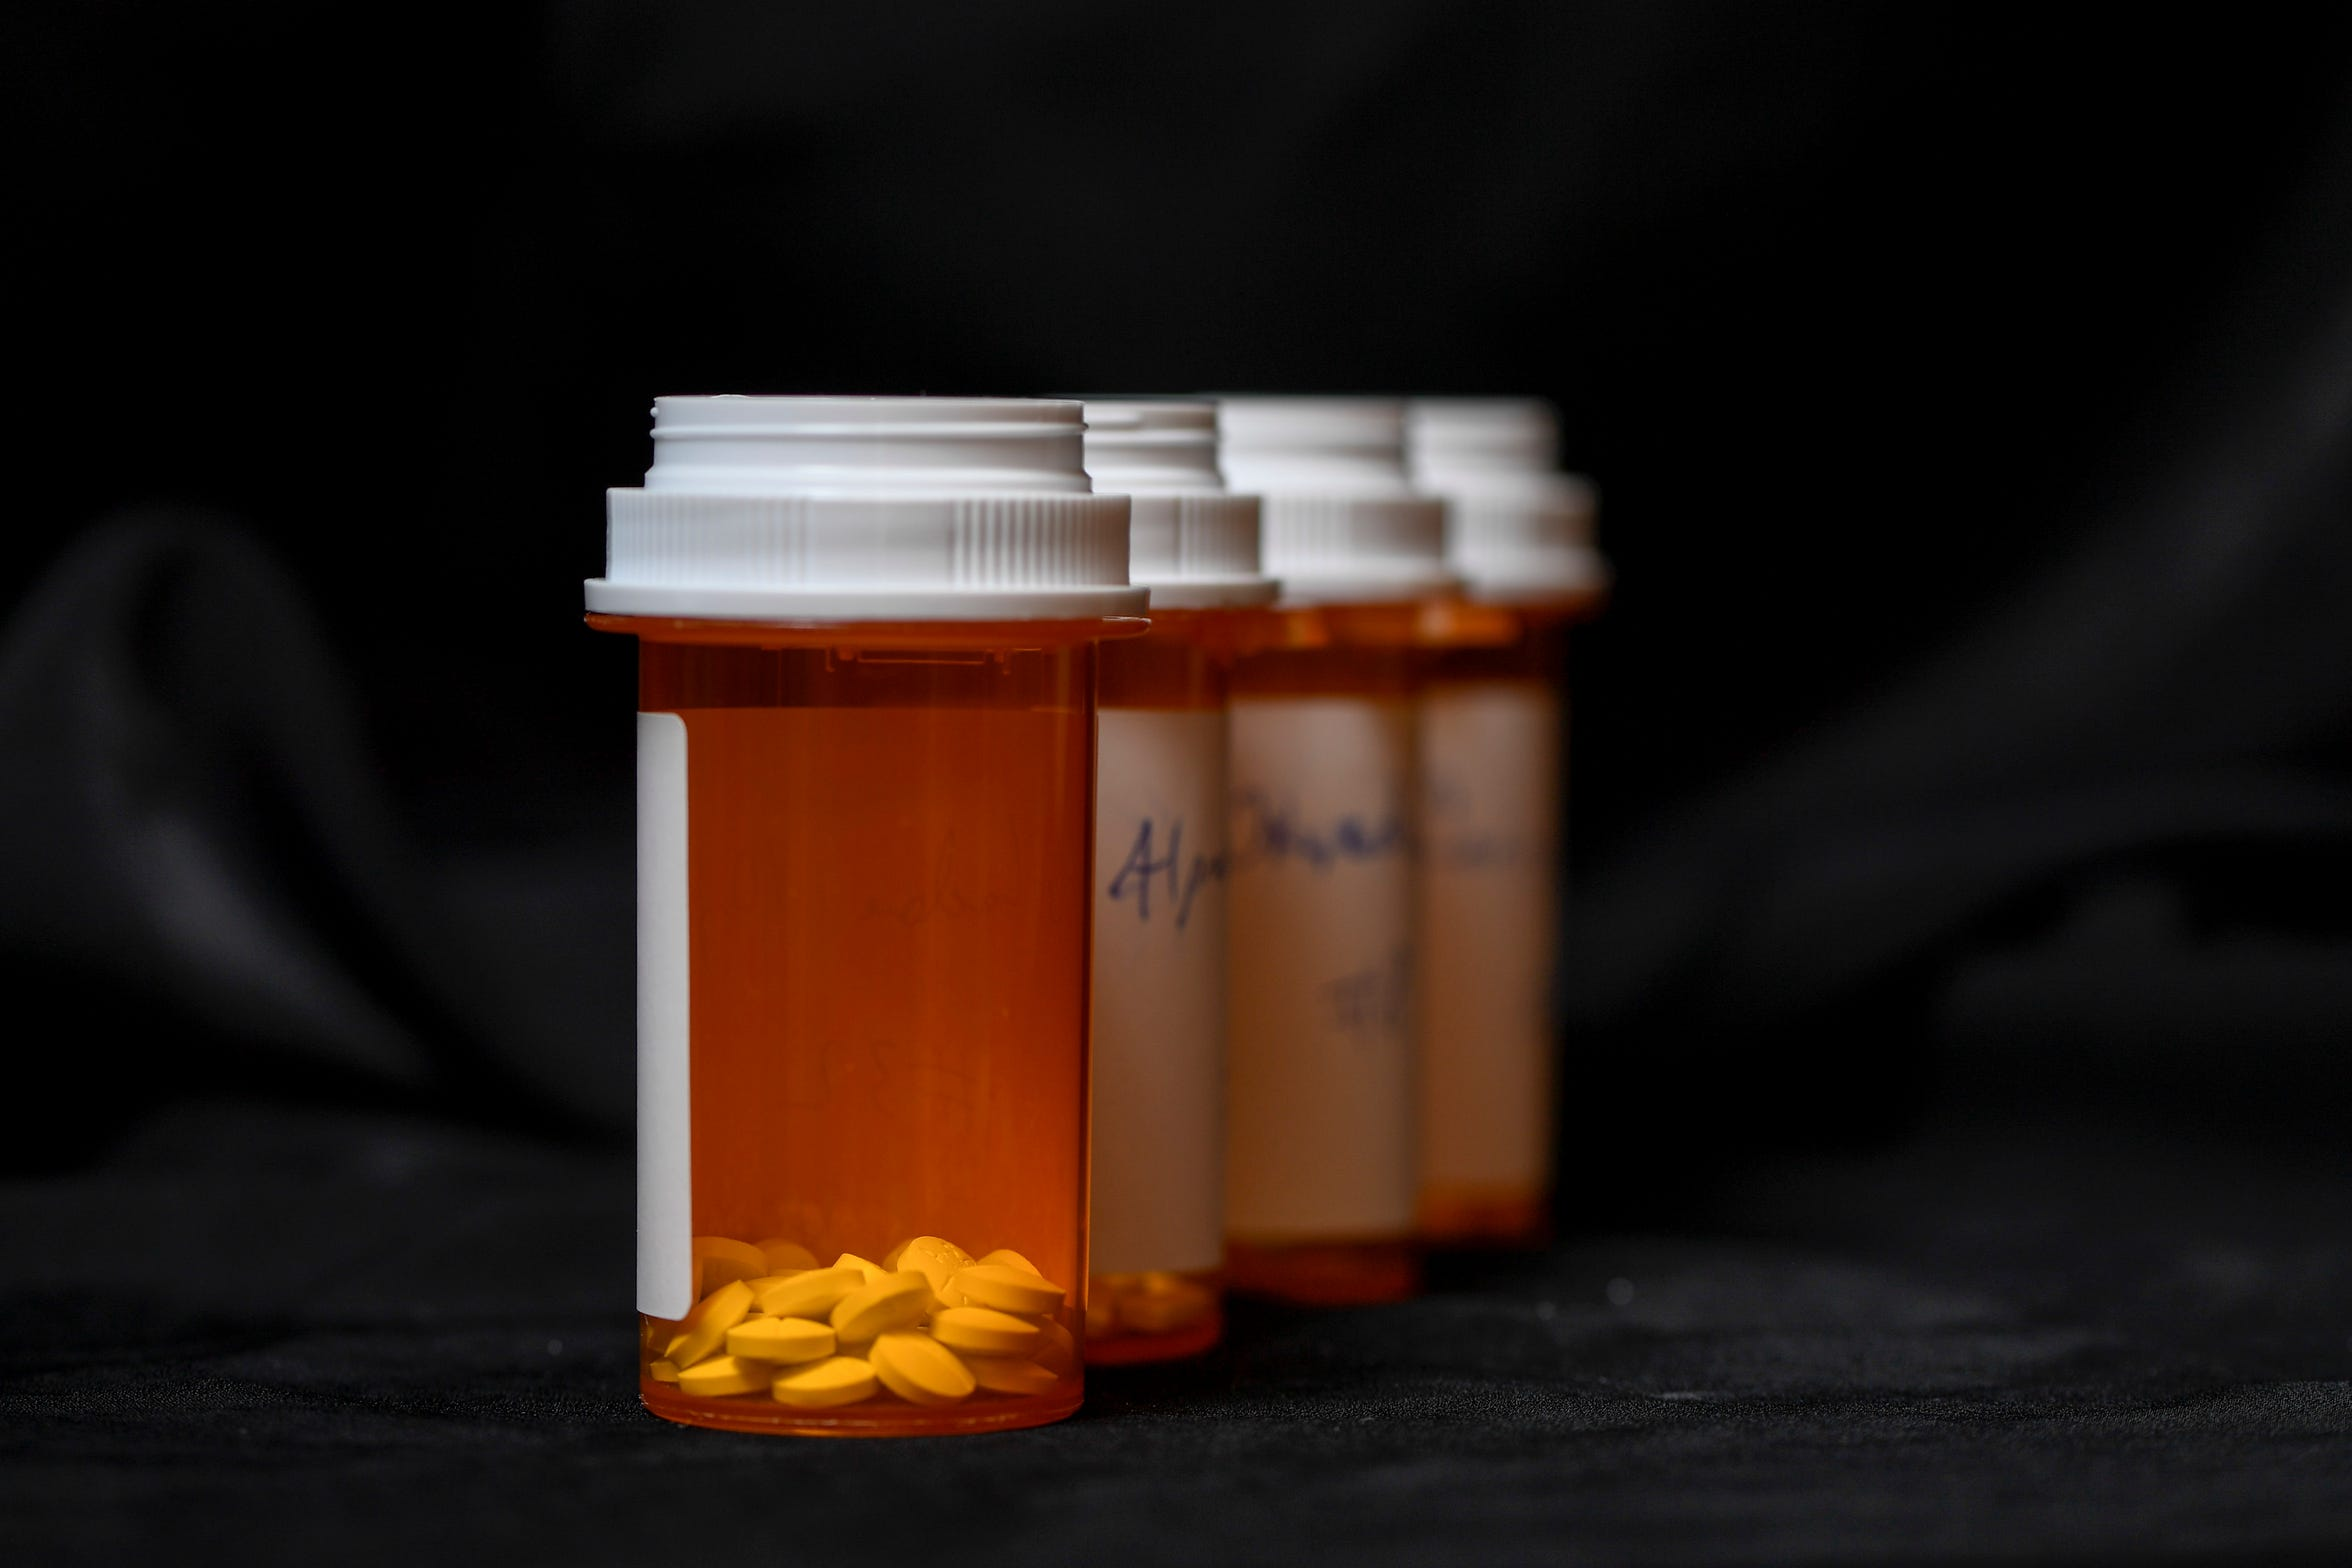 Nurse practitioner Christina Collins often prescribed her patients a worrisome mix of opioids and other drugs like muscle relaxers. This photo shows a daily dose of methadone, Roxicodone, Soma and Xanax.